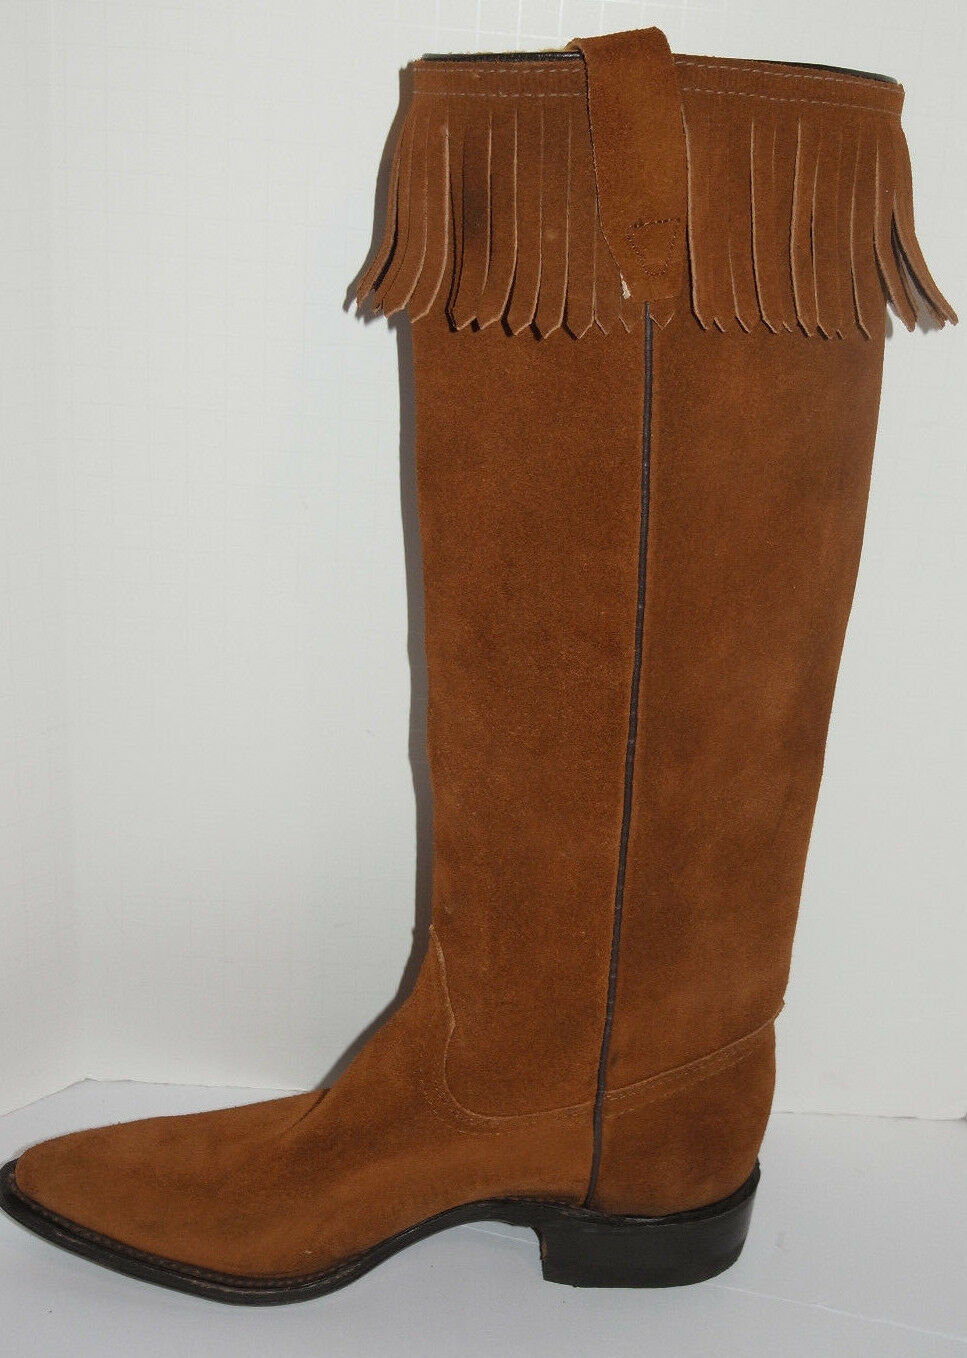 WOMEN'S UNUSED 1970s SUEDE LEATHER LEATHER LEATHER 15  BOOTS WITH FRINGES  NEW  MADE IN USA 5.5C e80060